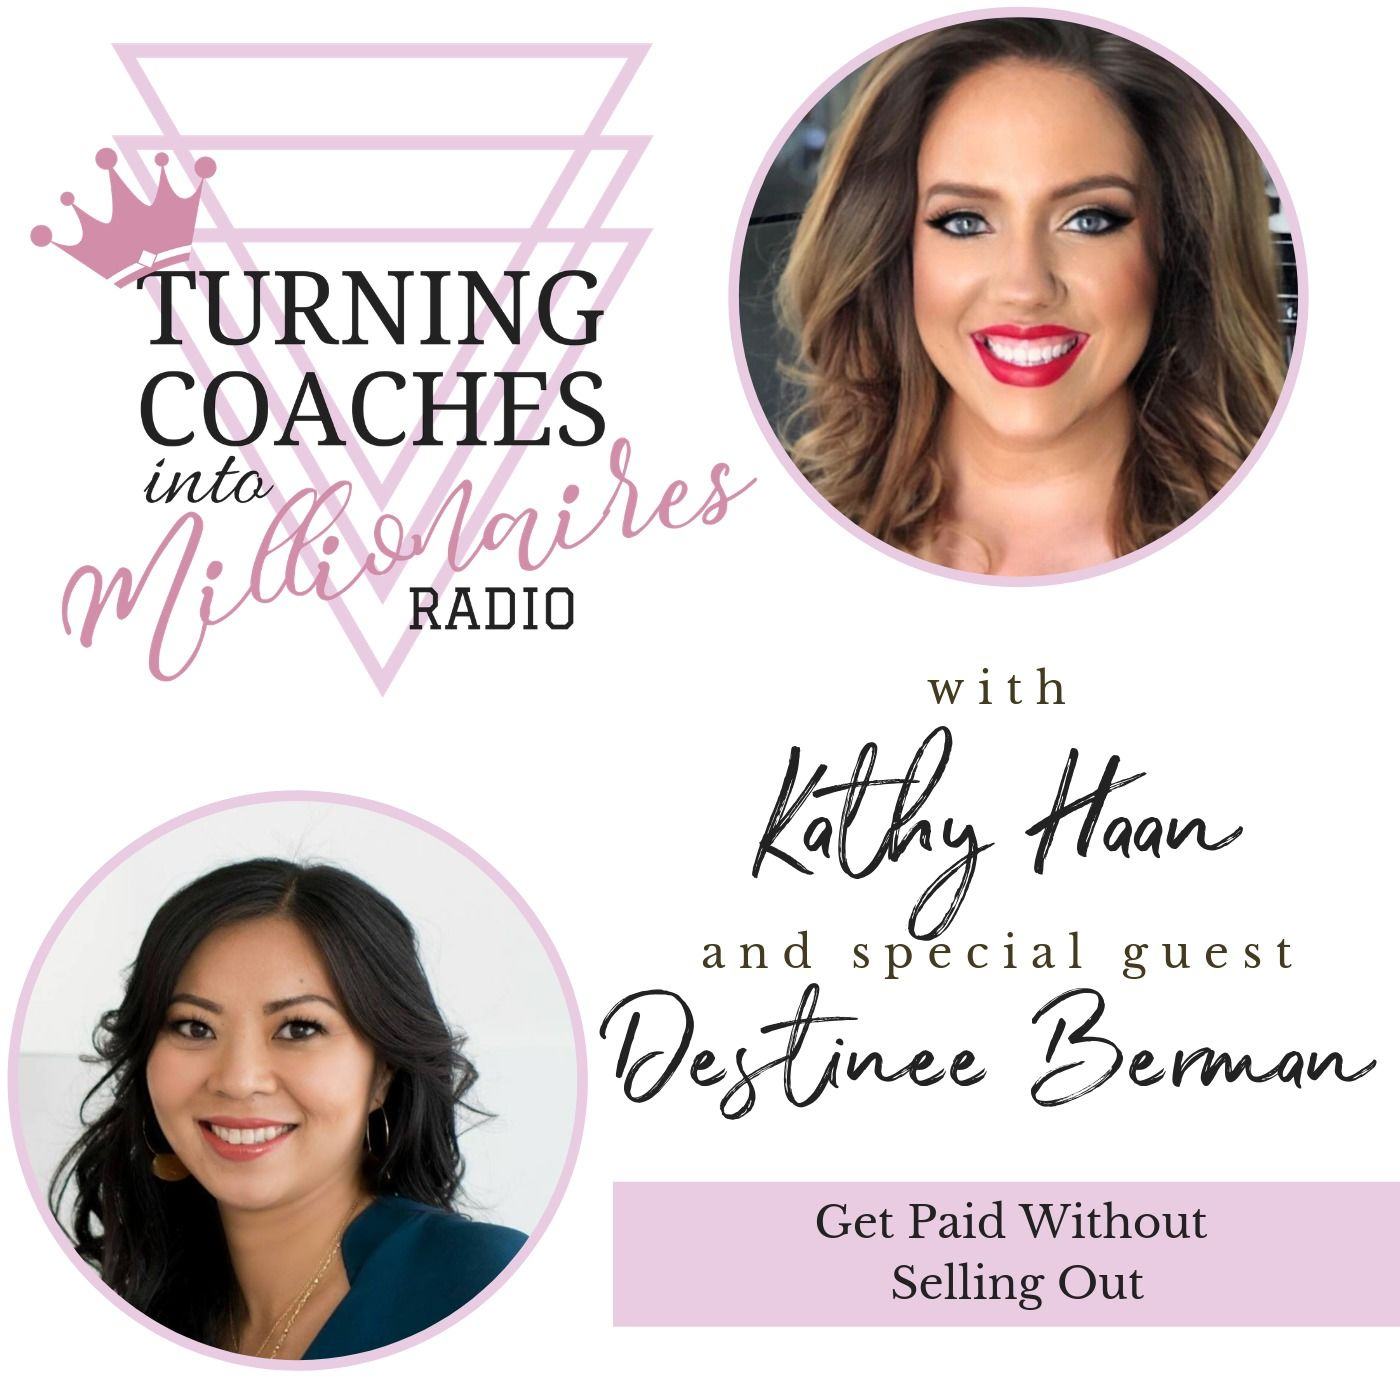 Get Paid Without Selling Out With Destinee Berman